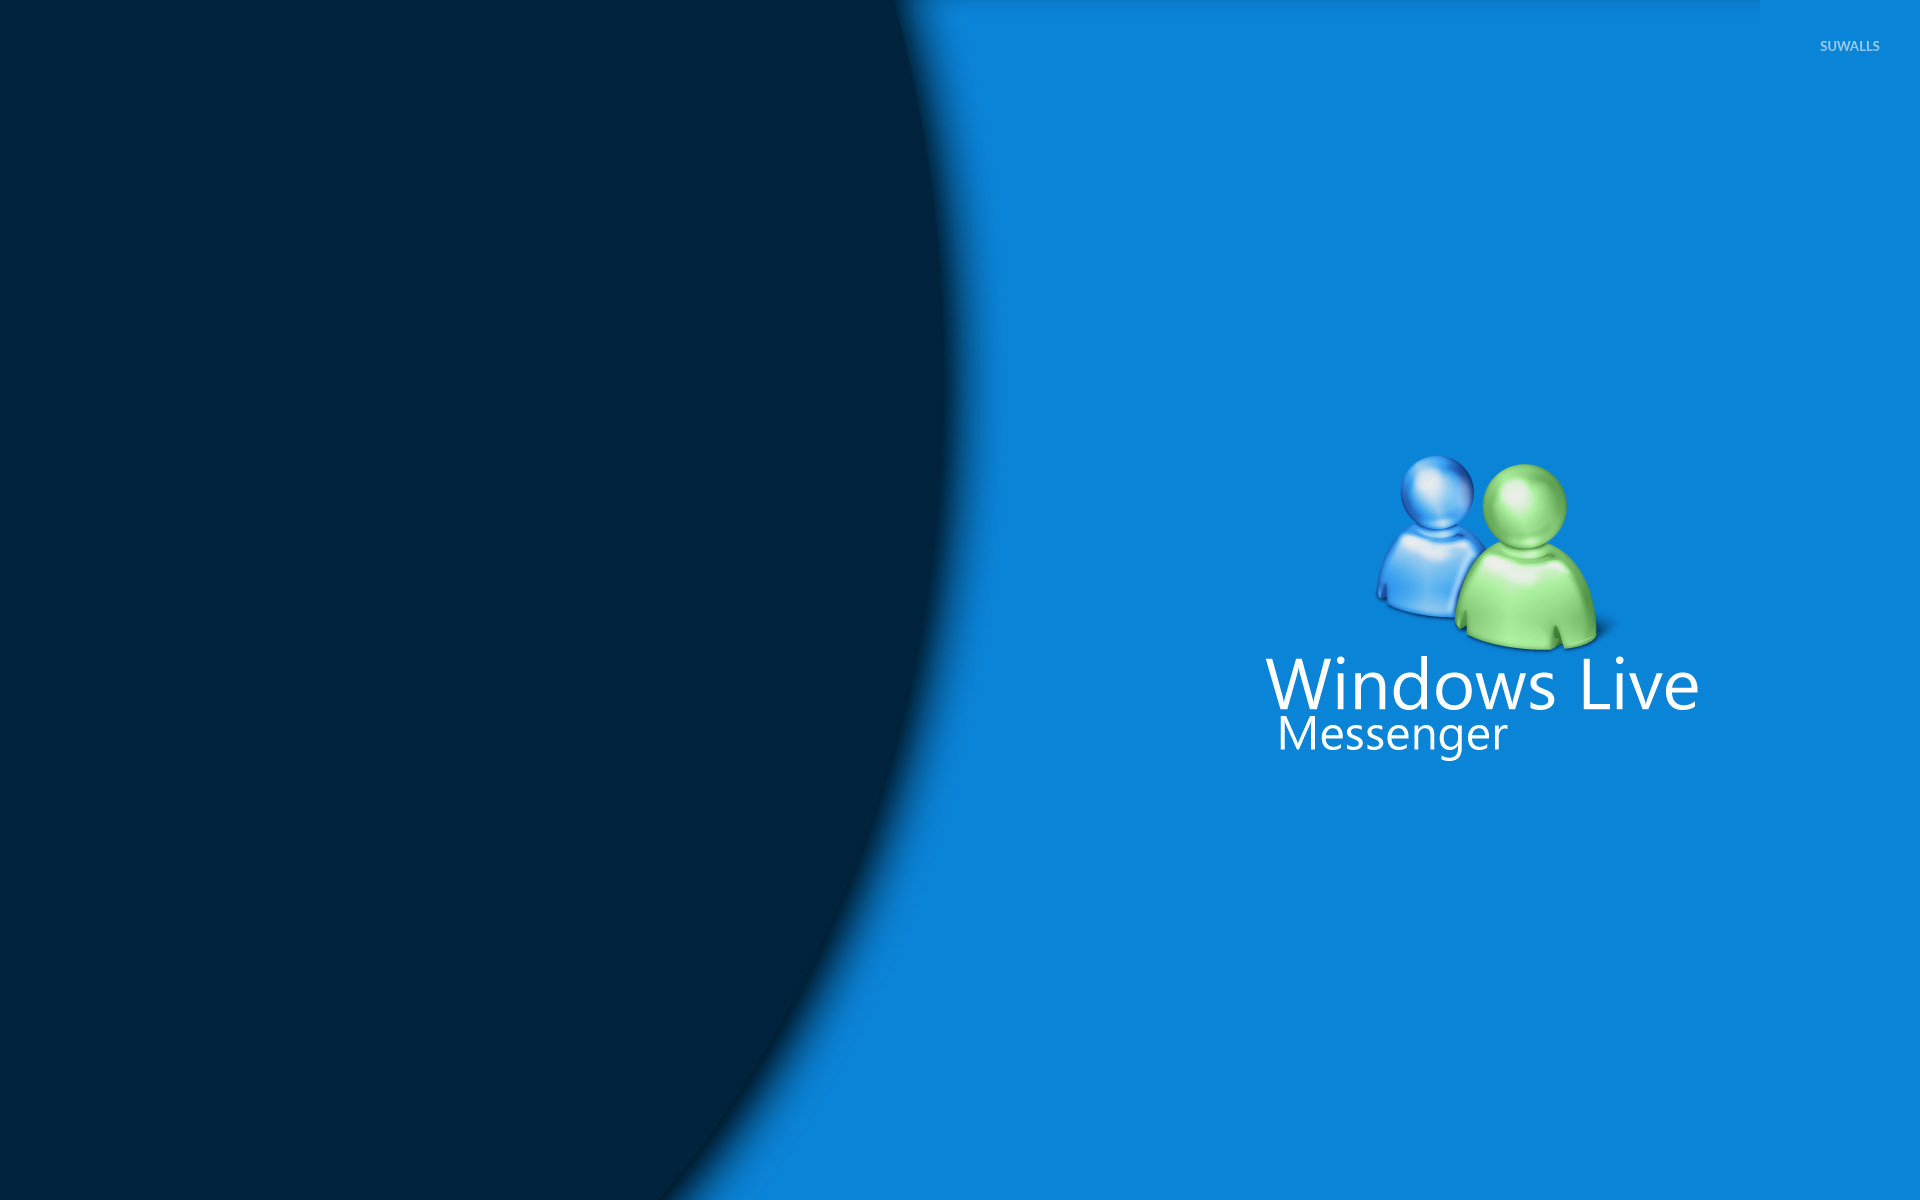 Window Live Messenger Windows Live Messenger Wallpaper Computer Wallpapers